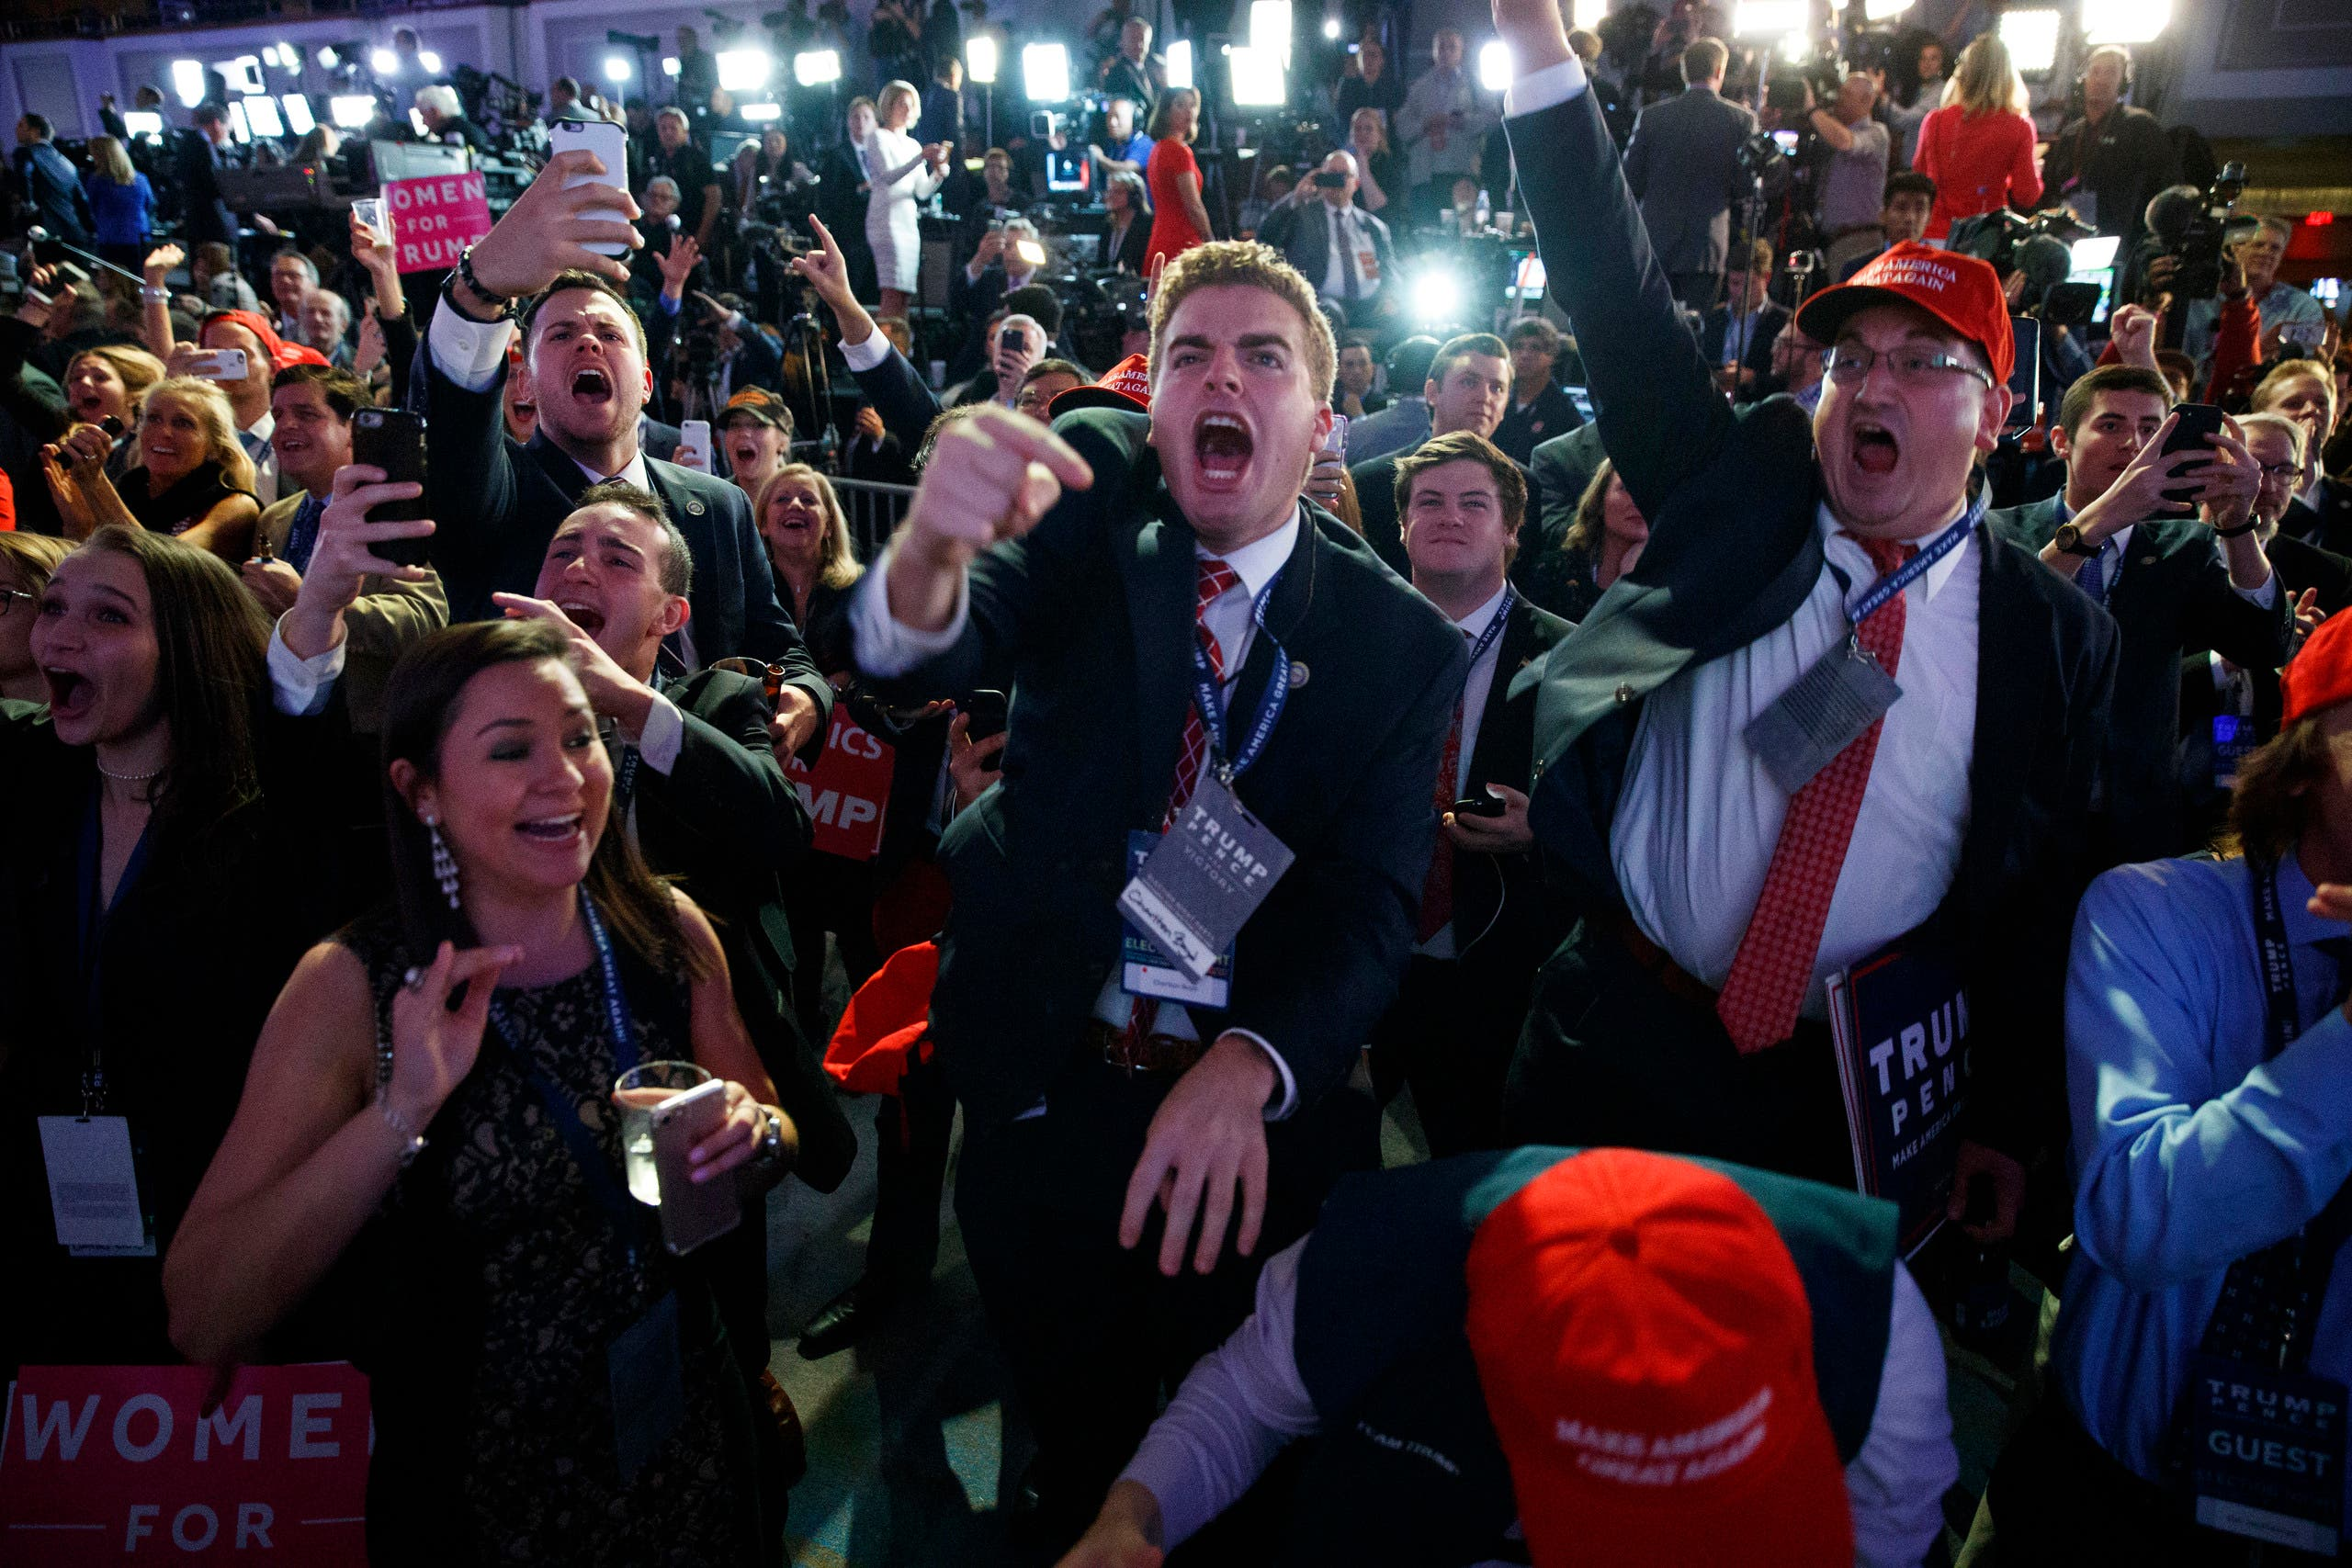 Supporters of Republican presidential candidate Donald Trump cheer as they watch election returns during an election night rally, Tuesday, Nov. 8, 2016, in New York. (AP)